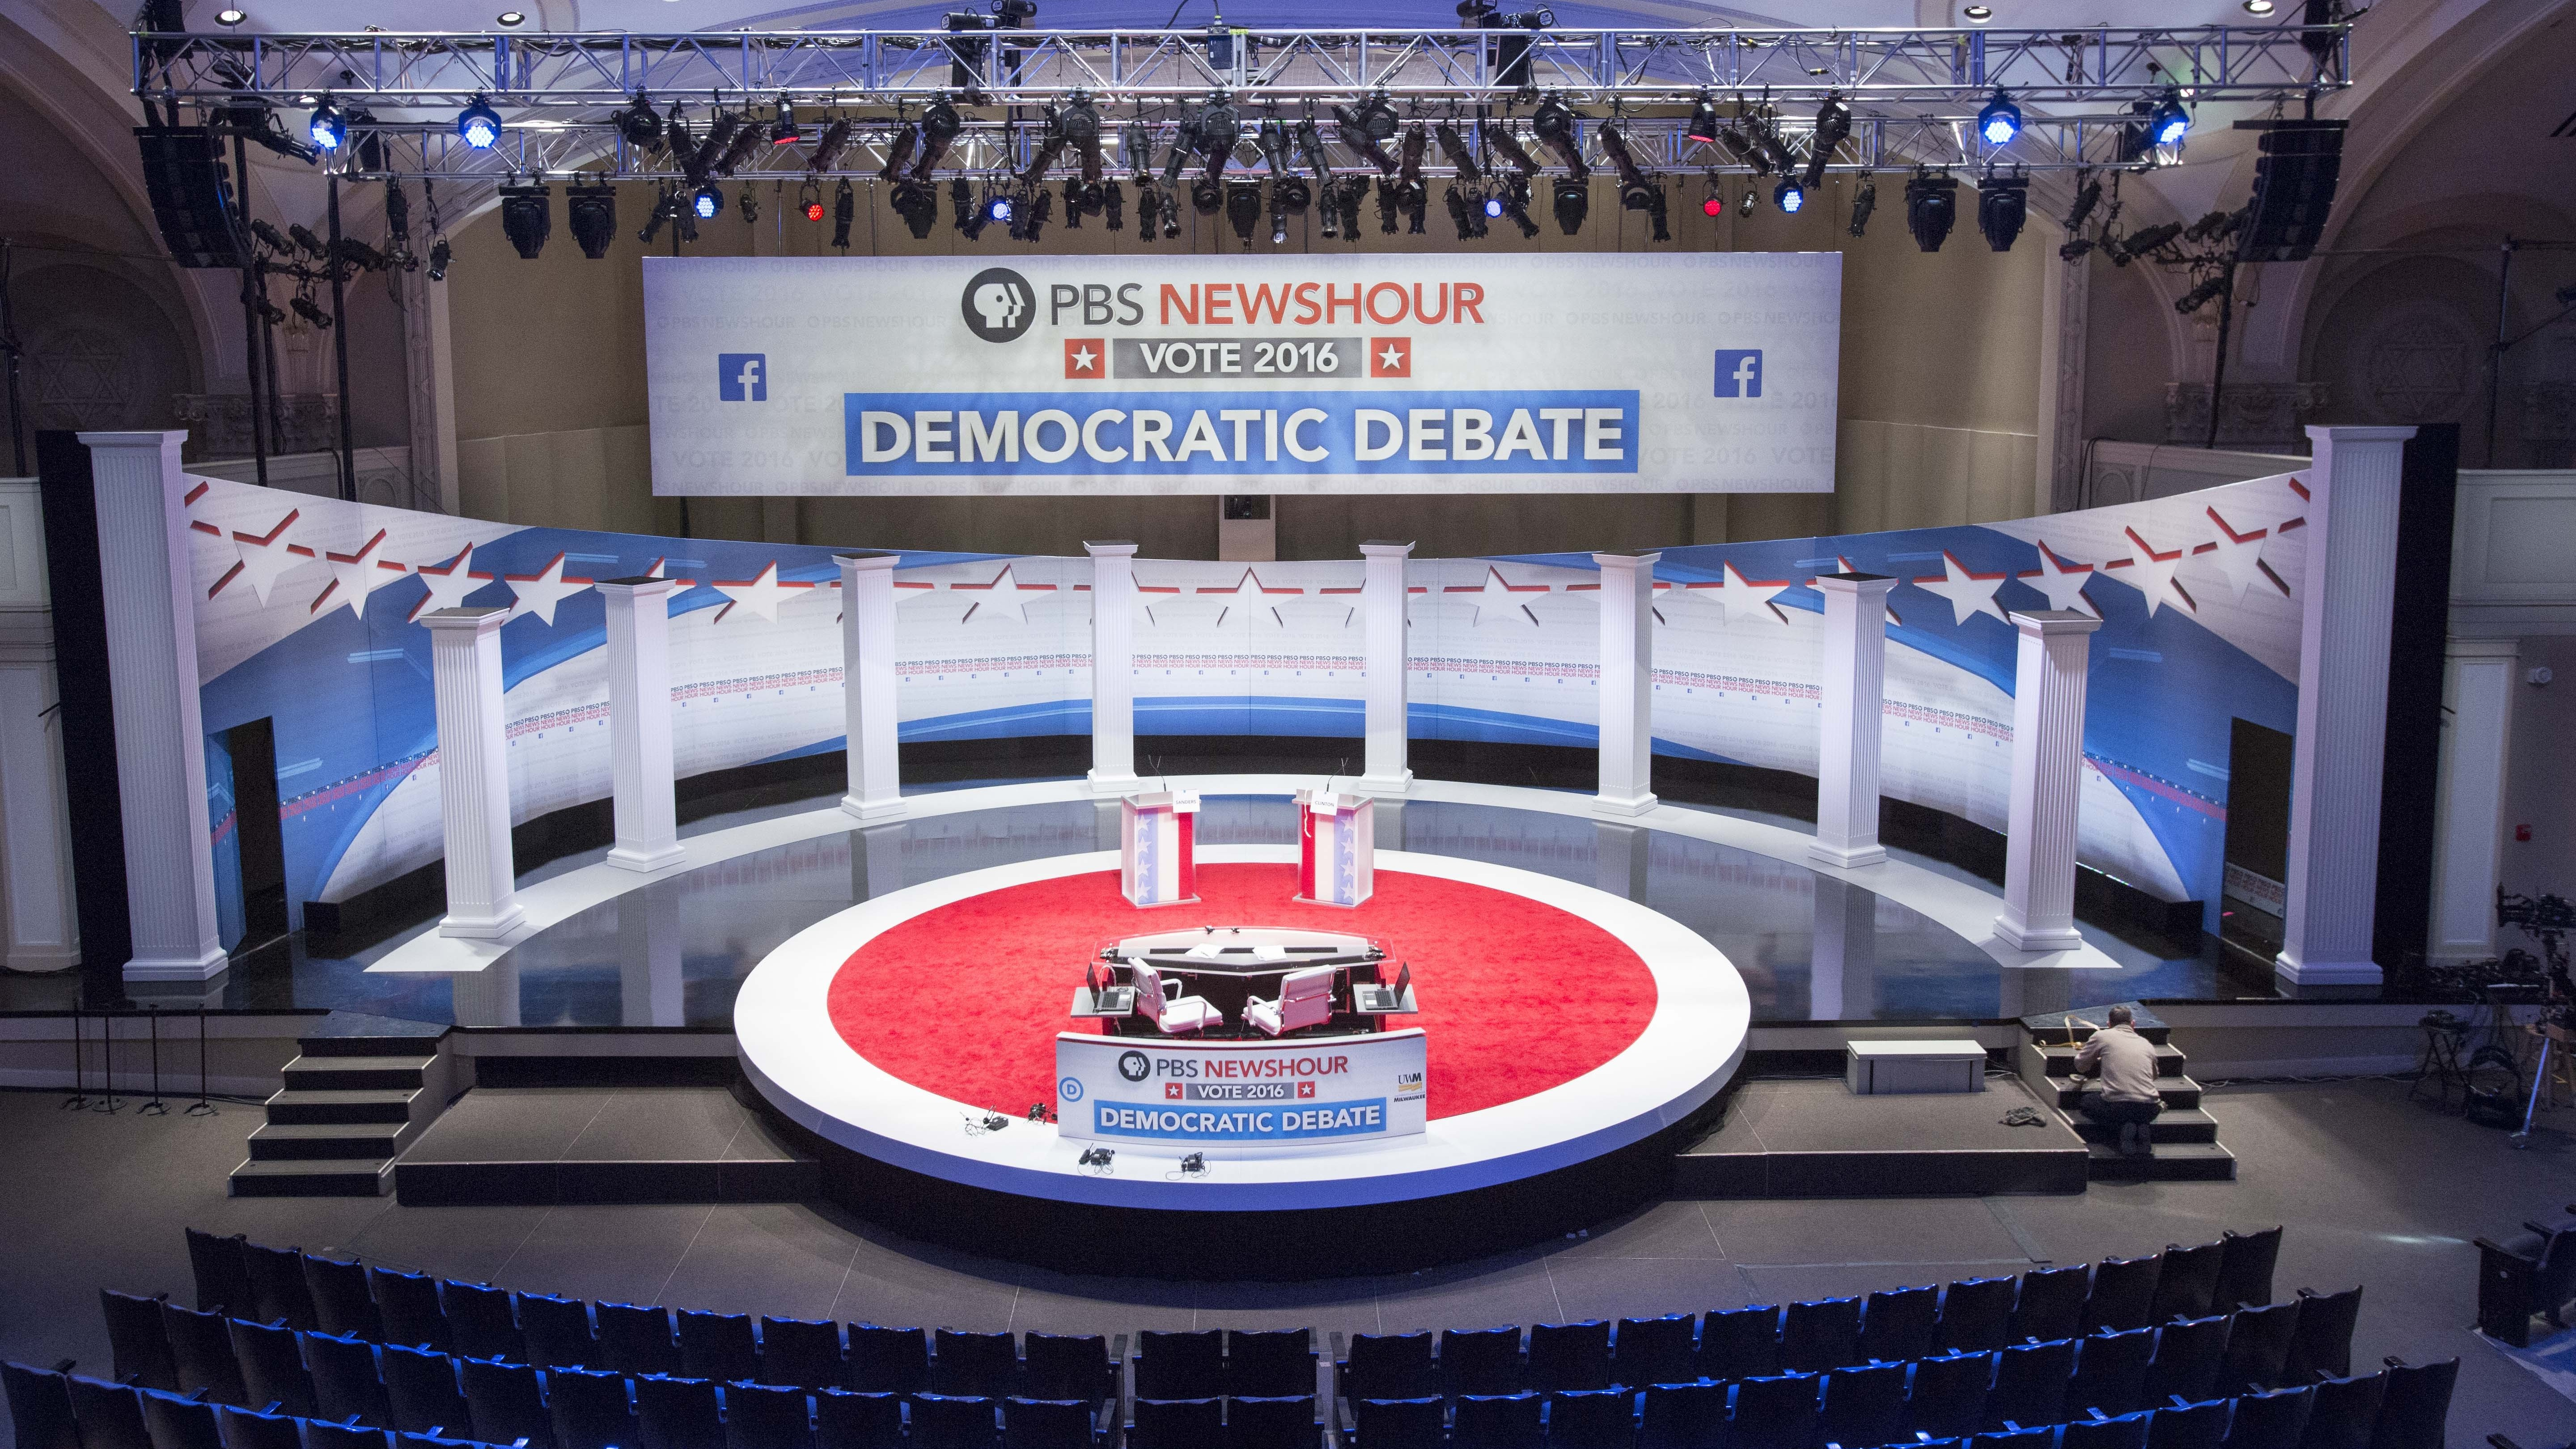 Final touches to the stage for Thursday's Democratic debate